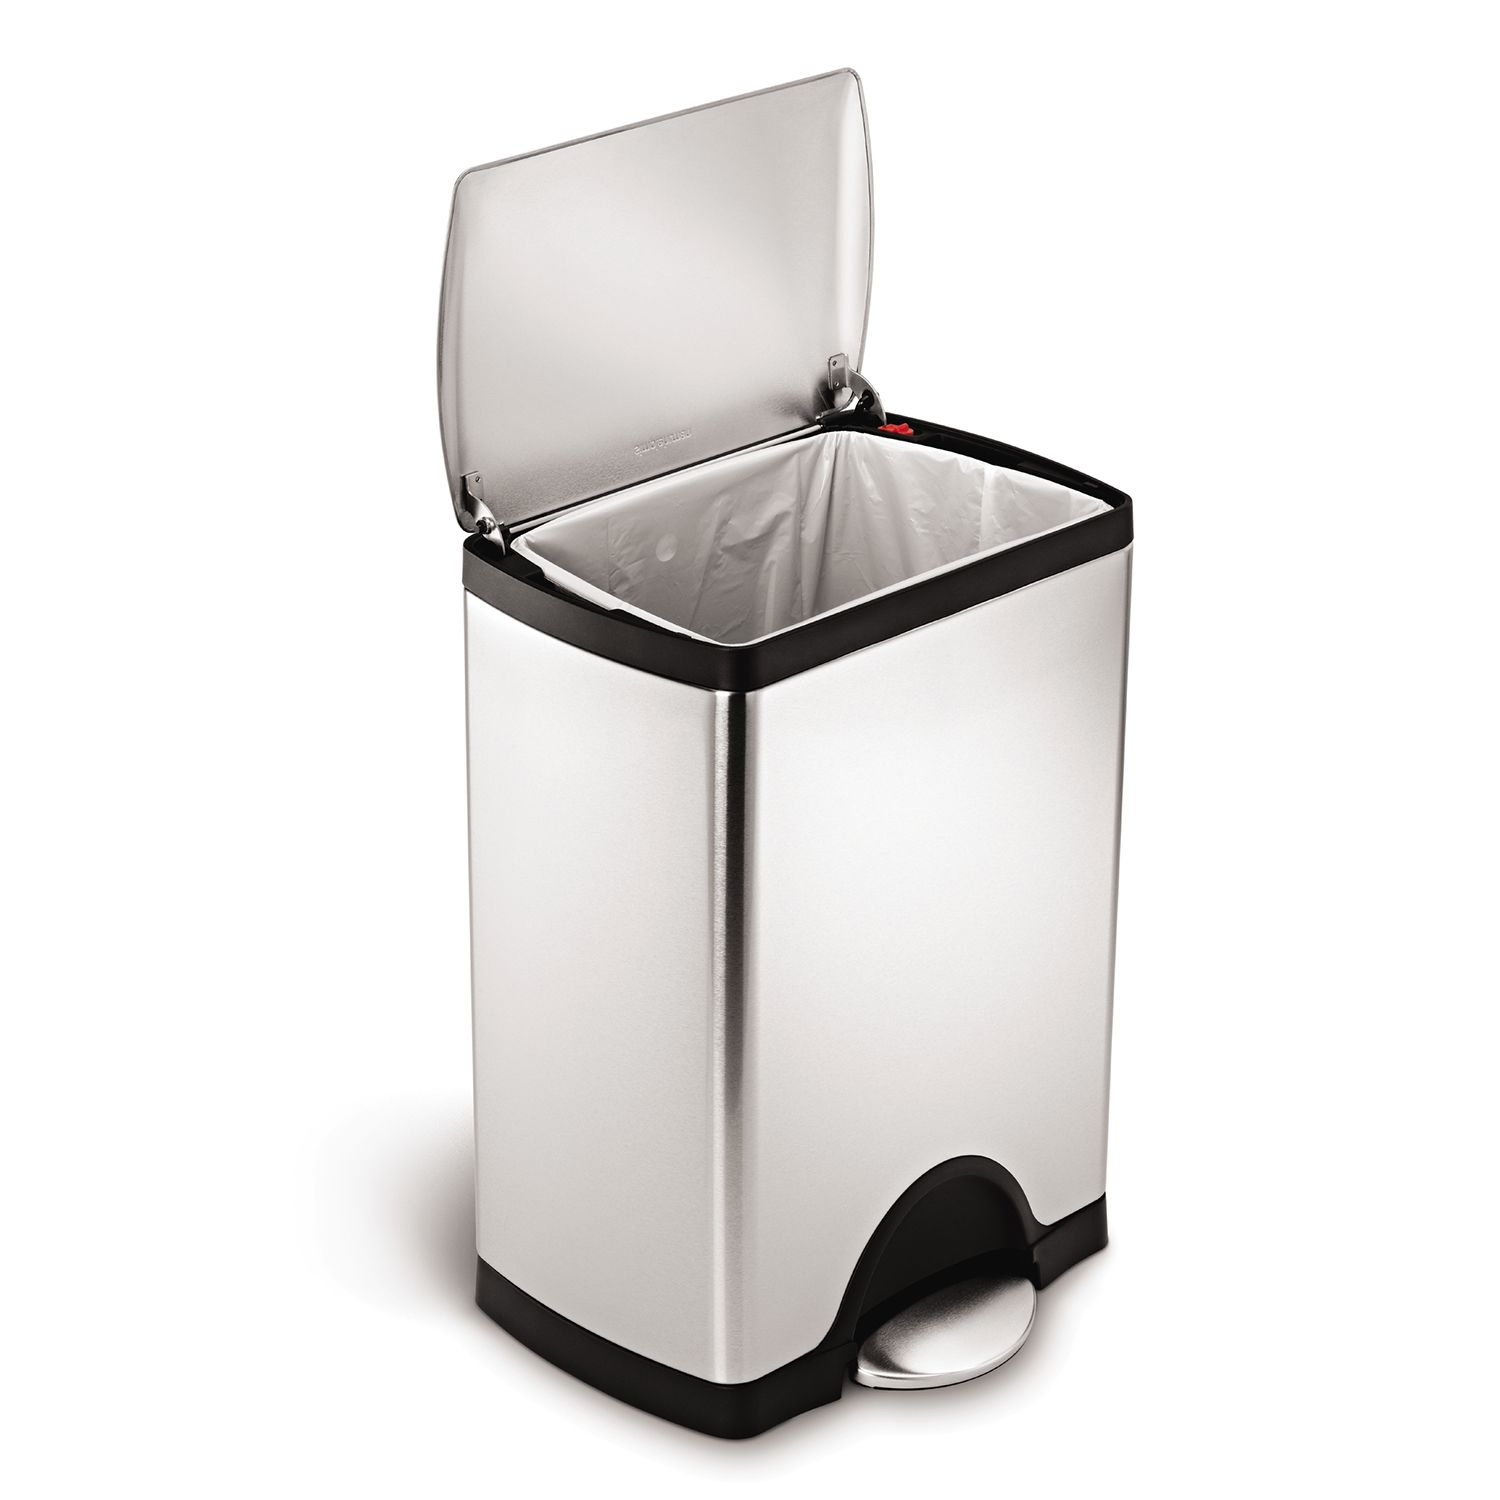 trash cans storage organization storage cleaning kohl s